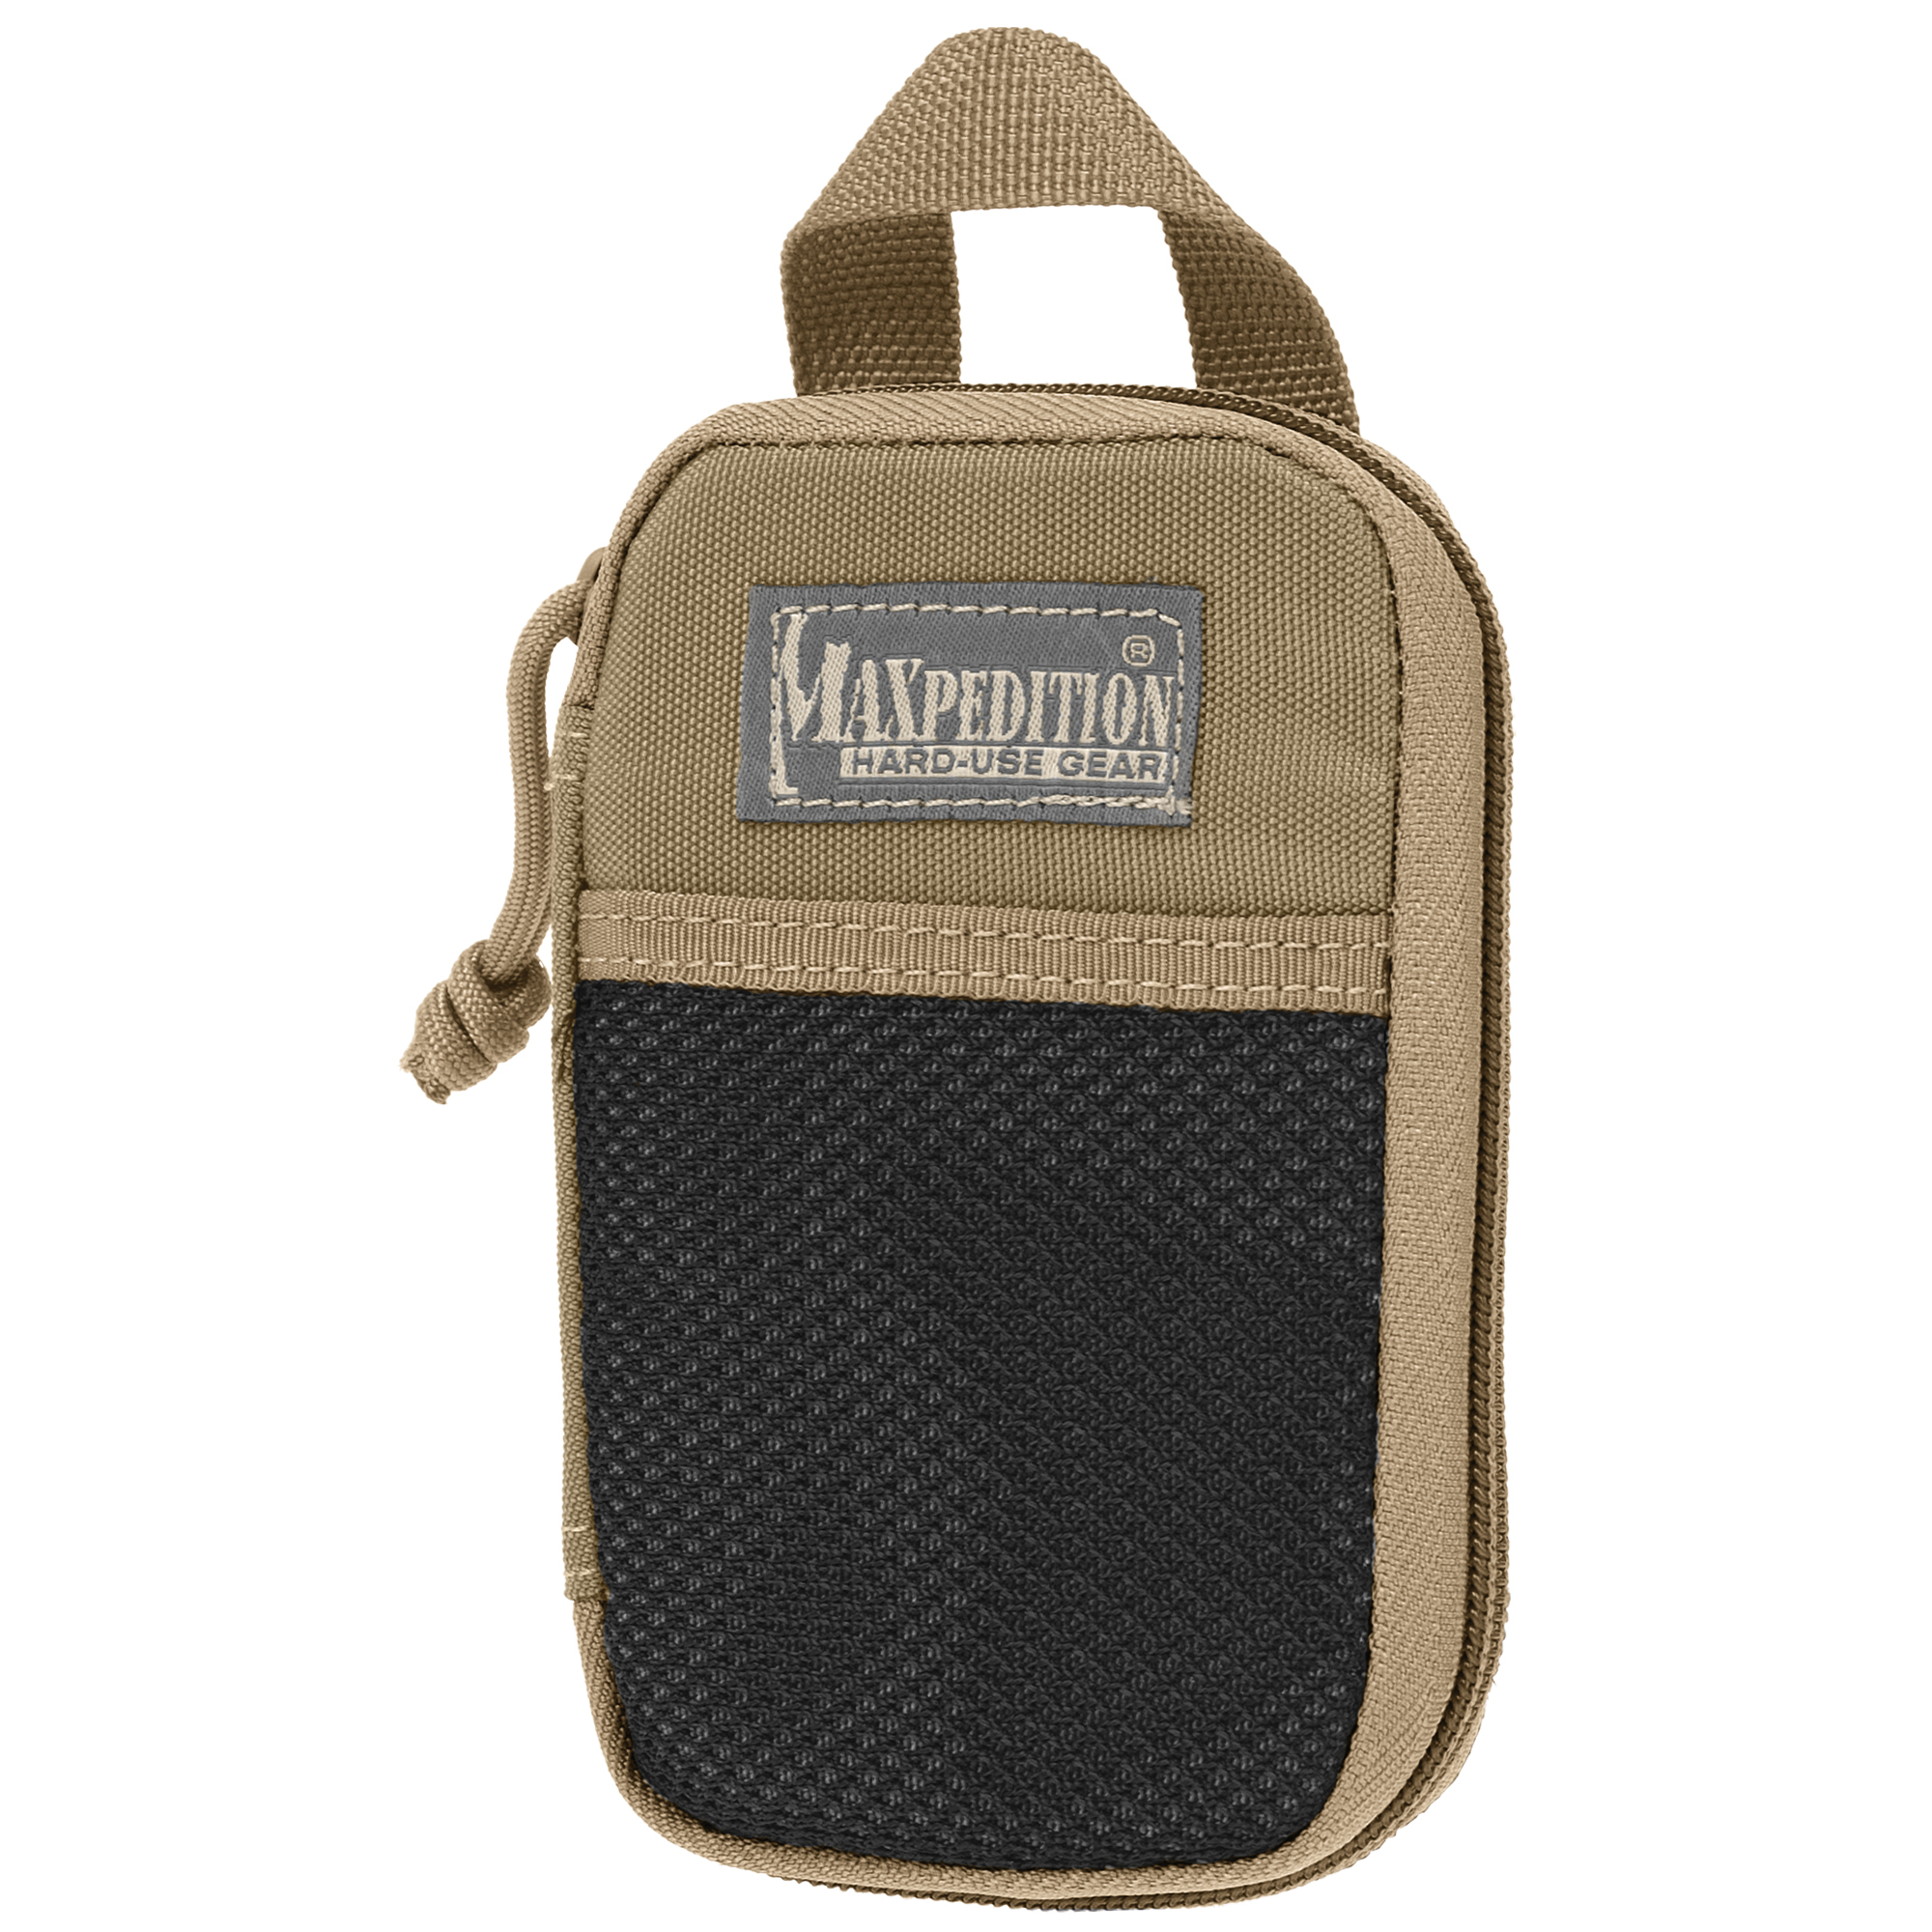 """If it's hard to find"""" it's hard to use. Kill the clutter and keep it together with Maxpedition Pocket Organizers: portable multi-tool managers that can be packed"""" carried or easily secured to the PALS webbing exterior of your Maxpedition bag. Instantly recognizable by their large front mesh pockets and oversized carry handles"""" these practical utility packs come in 5 different sizes with multiple solutions to help keep you organized. Designed for smaller essentials."""